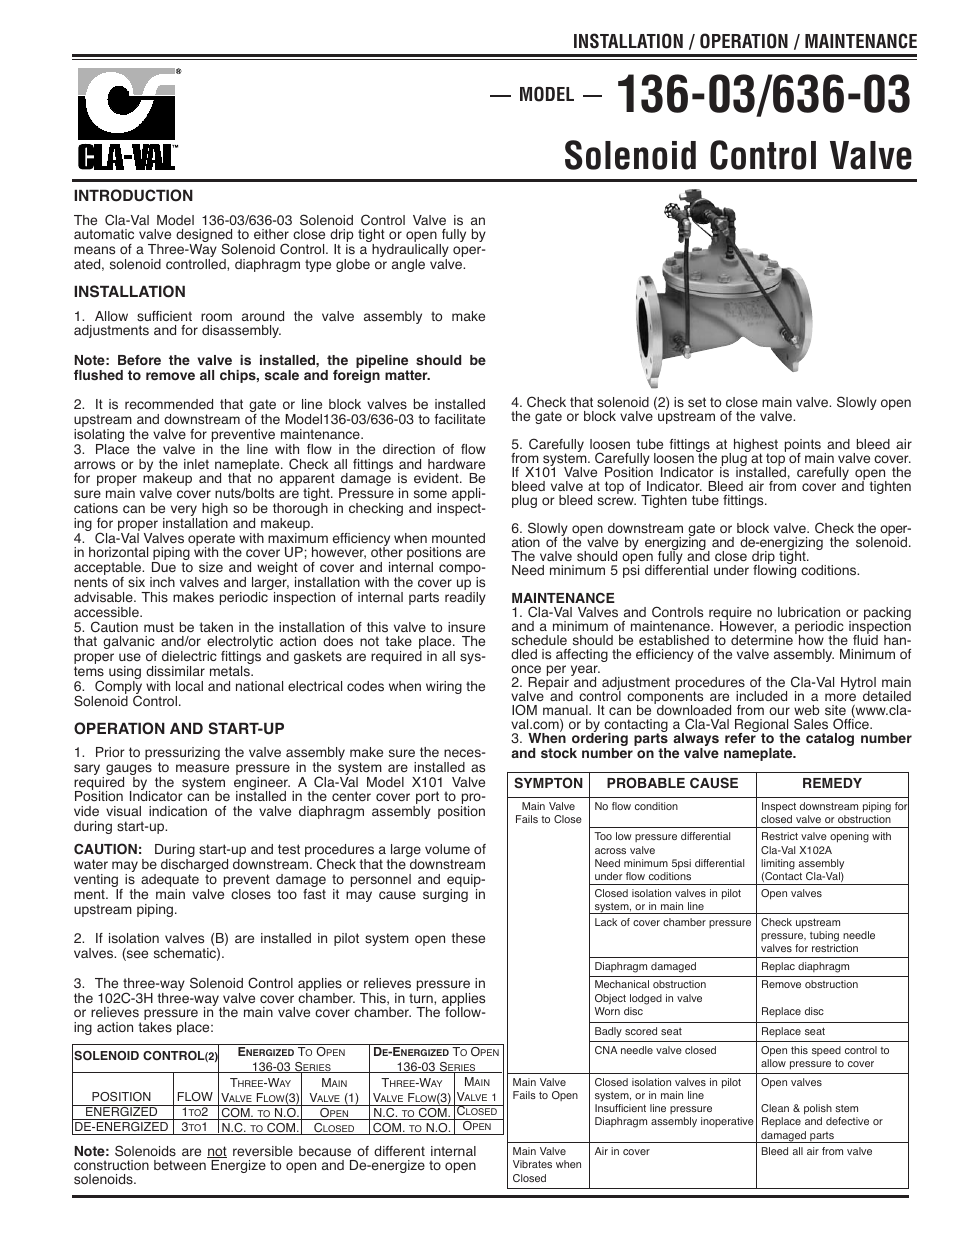 Valves Maintenance Manuals 1954 Allstate Scooter Wiring Diagram Schematic Slide Gates Array Cla Val 136 03 636 Valve Quick Manual User 2 Pages Rh